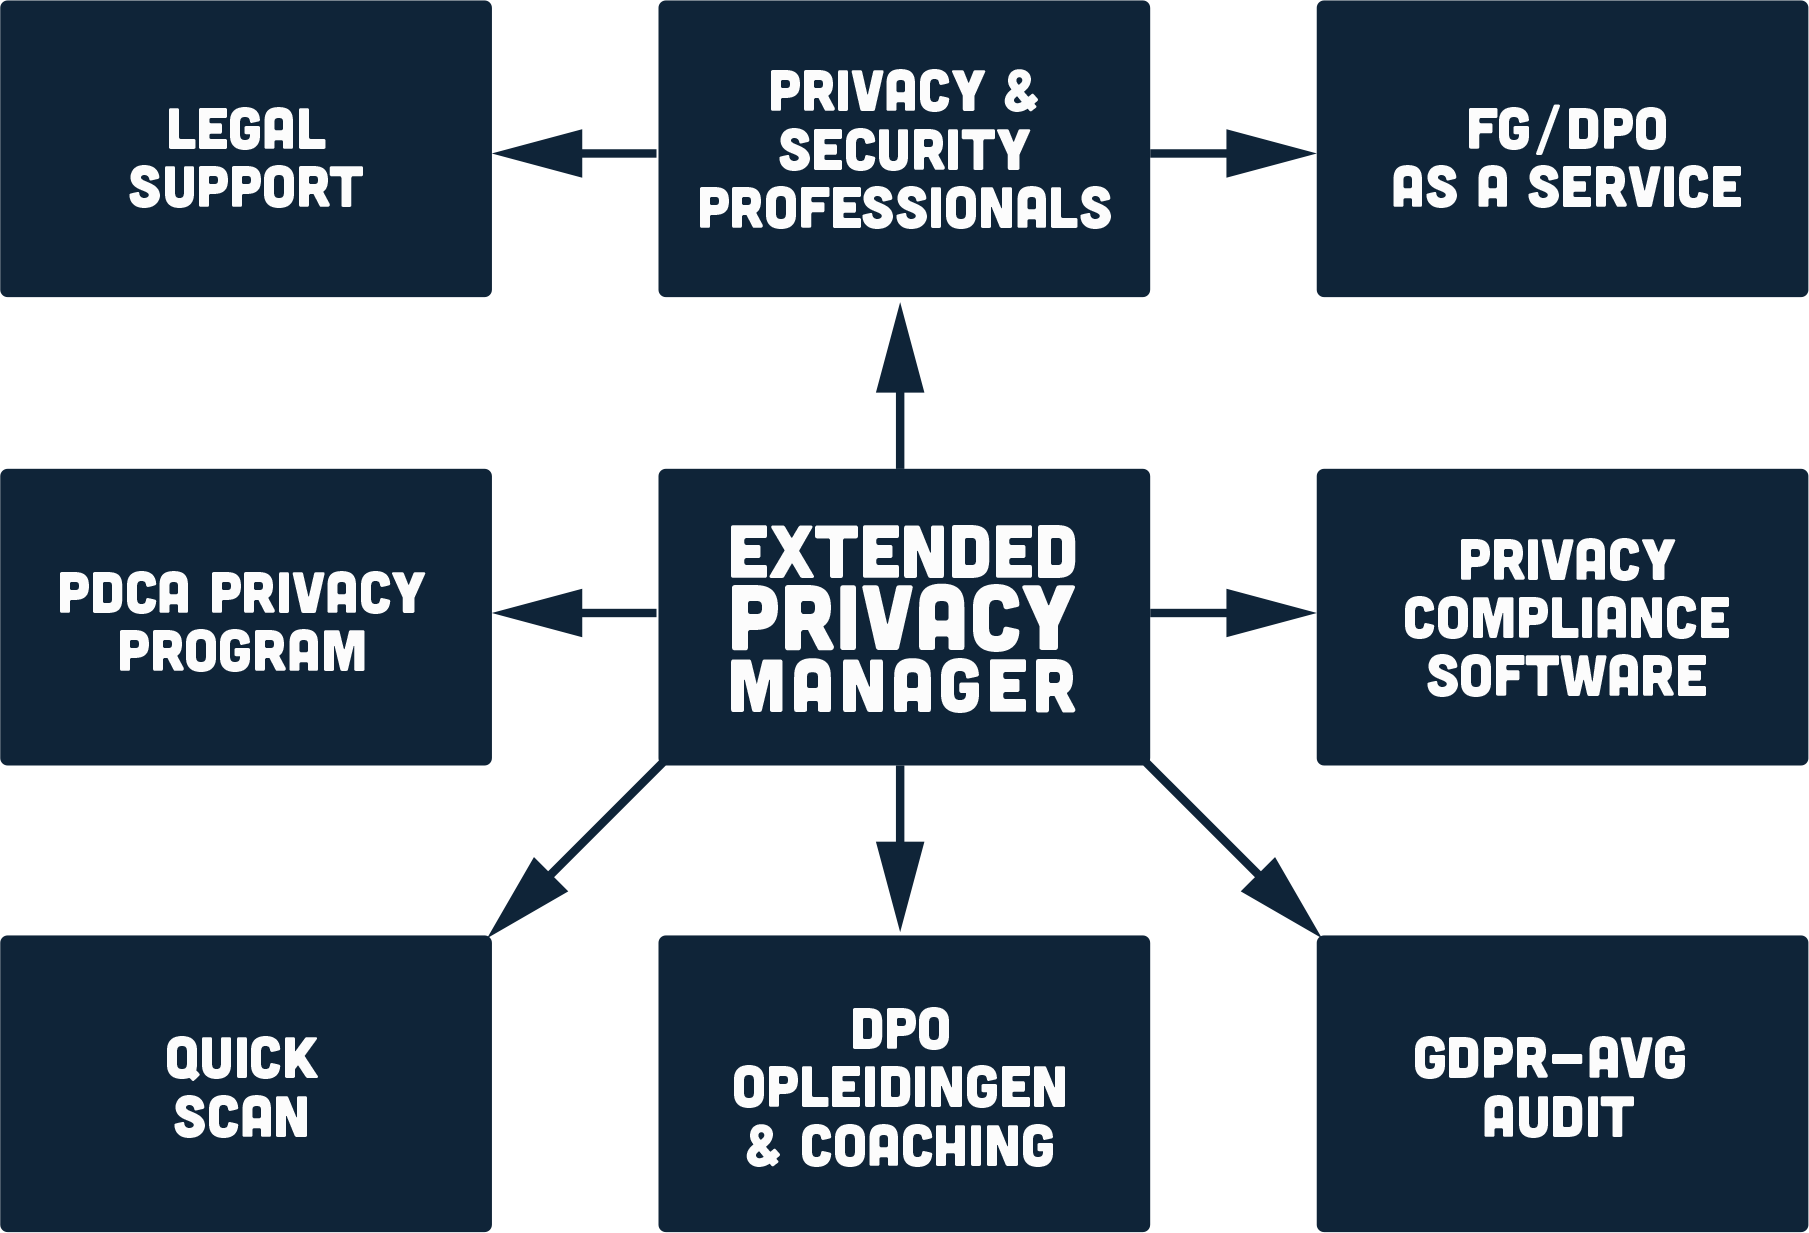 Extended Privacy Manager